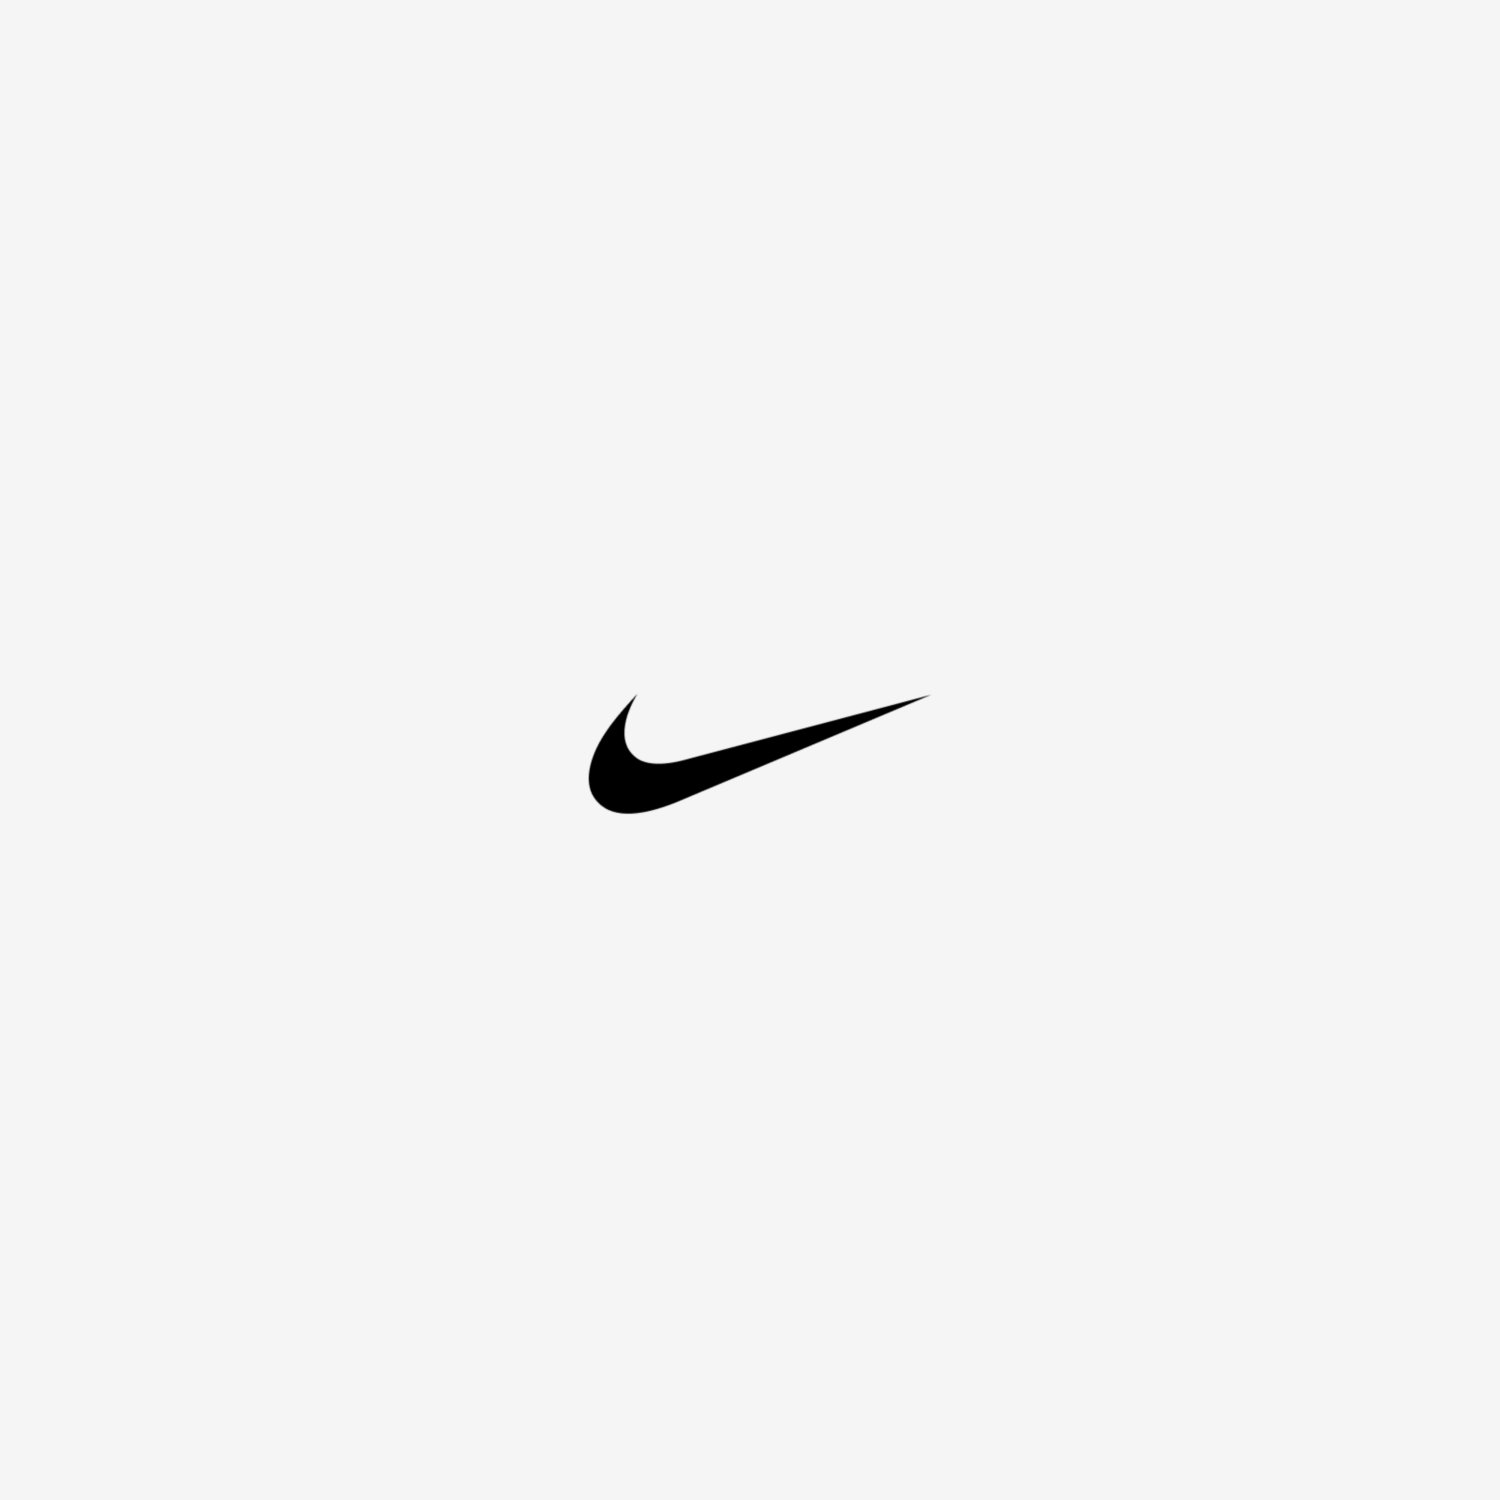 Nike Shoe Claim Form